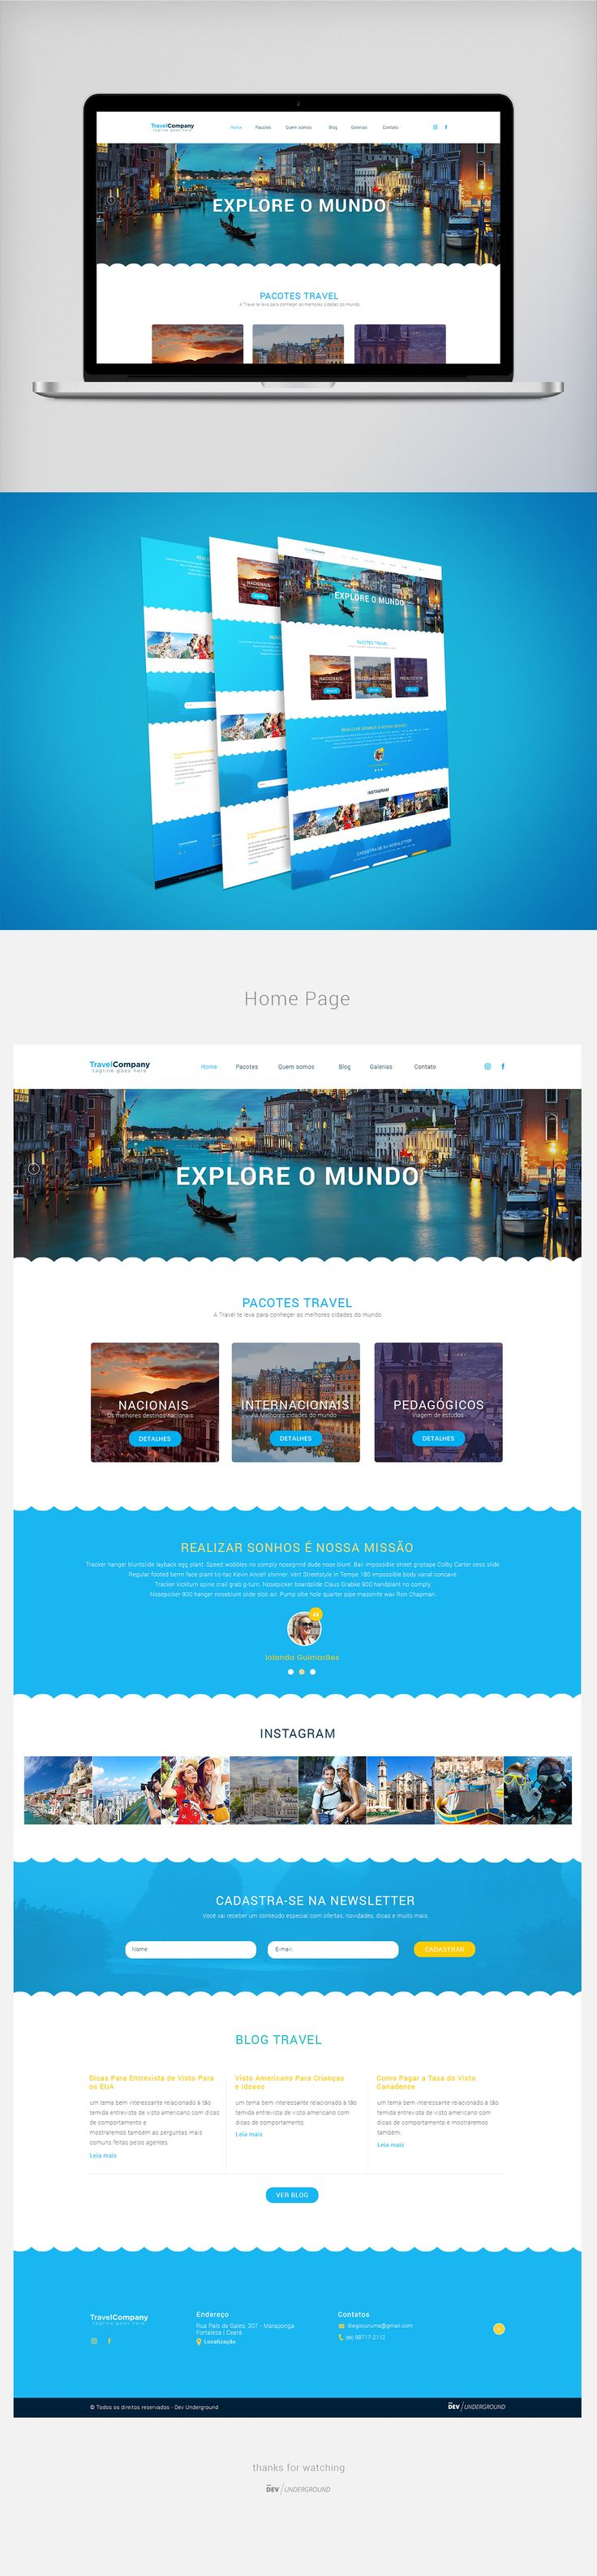 Travel Template - PSD Free on Behance